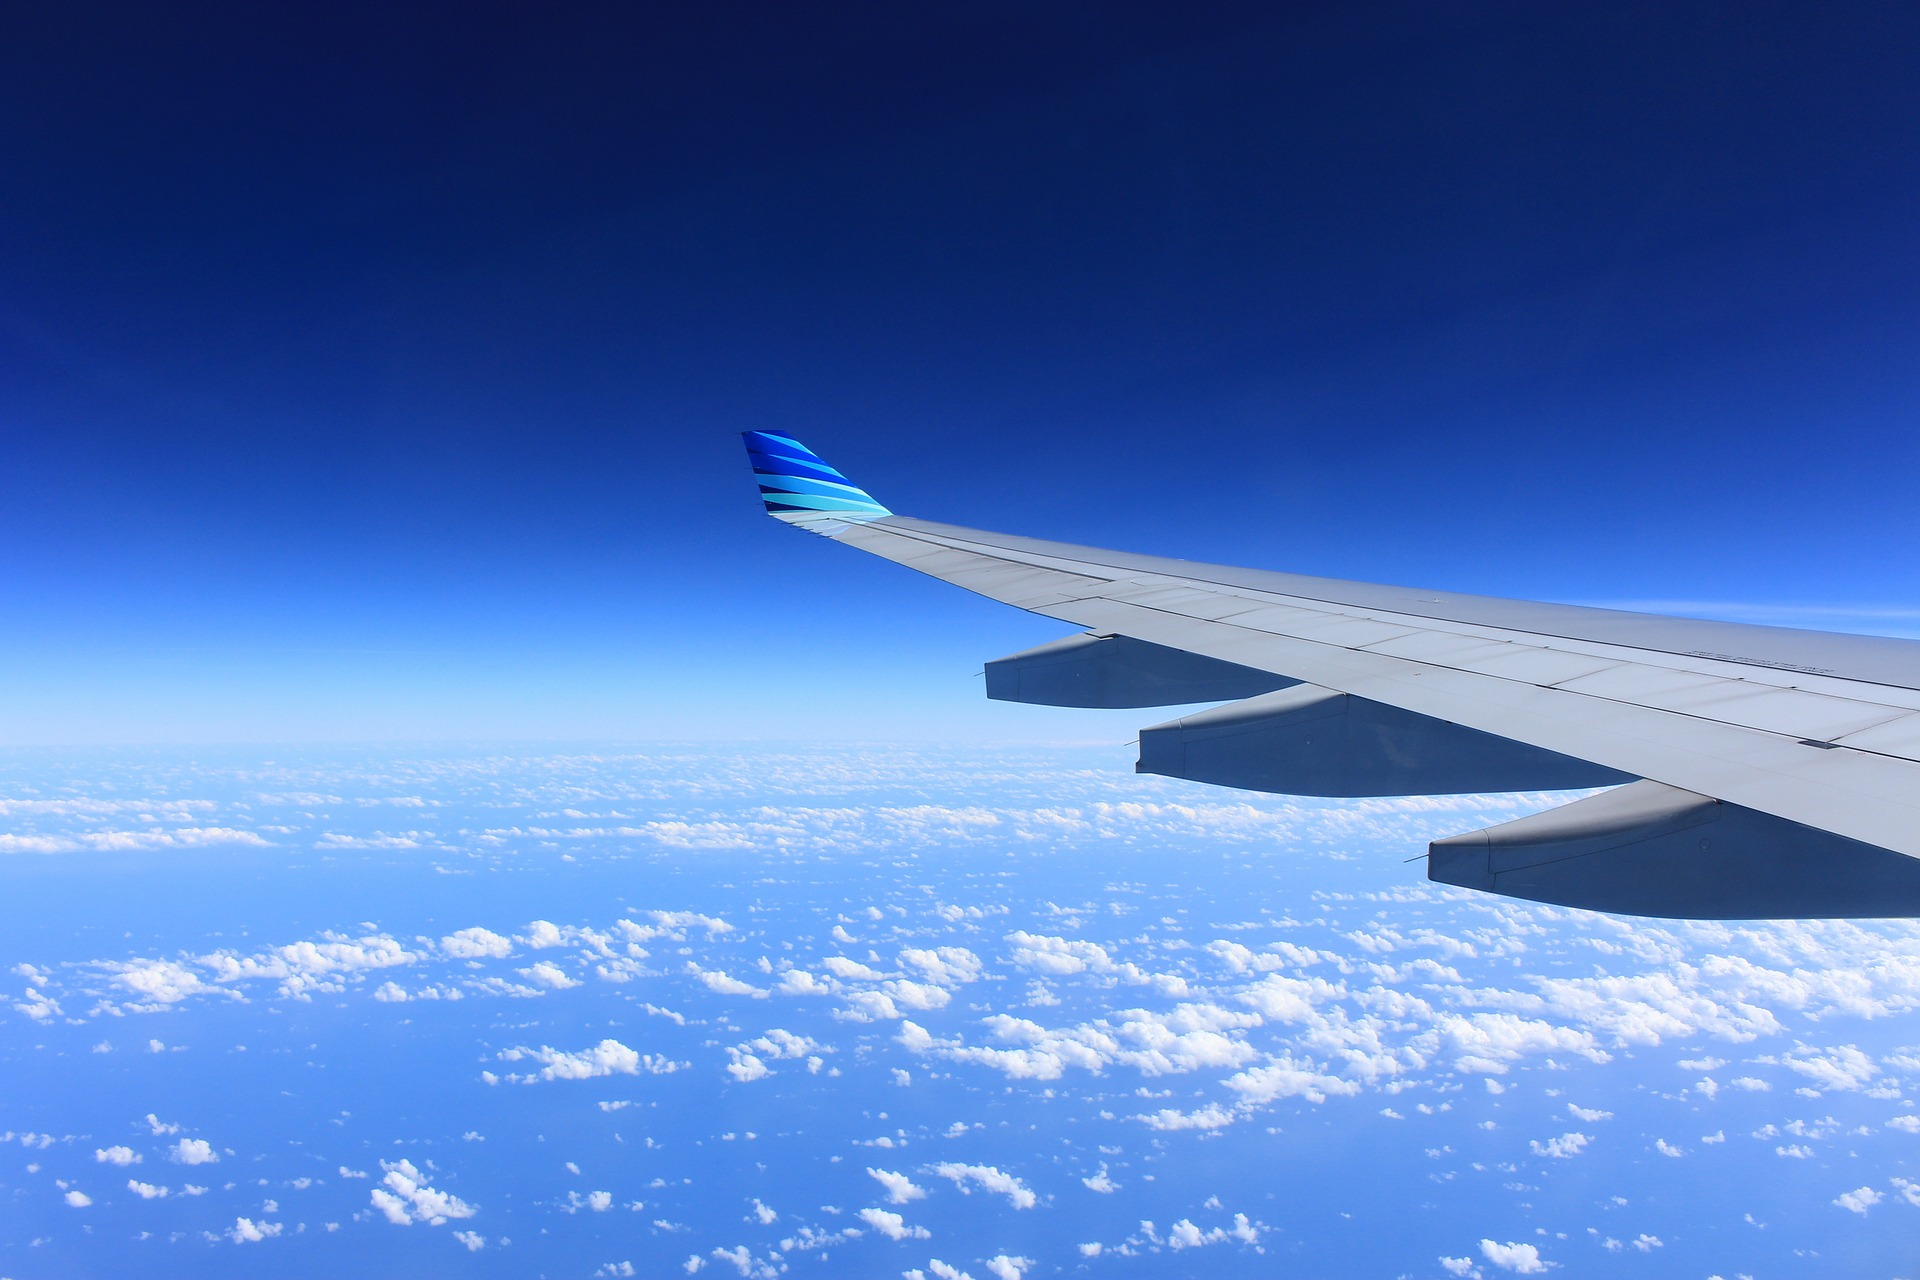 aeroplane wing in blue sky